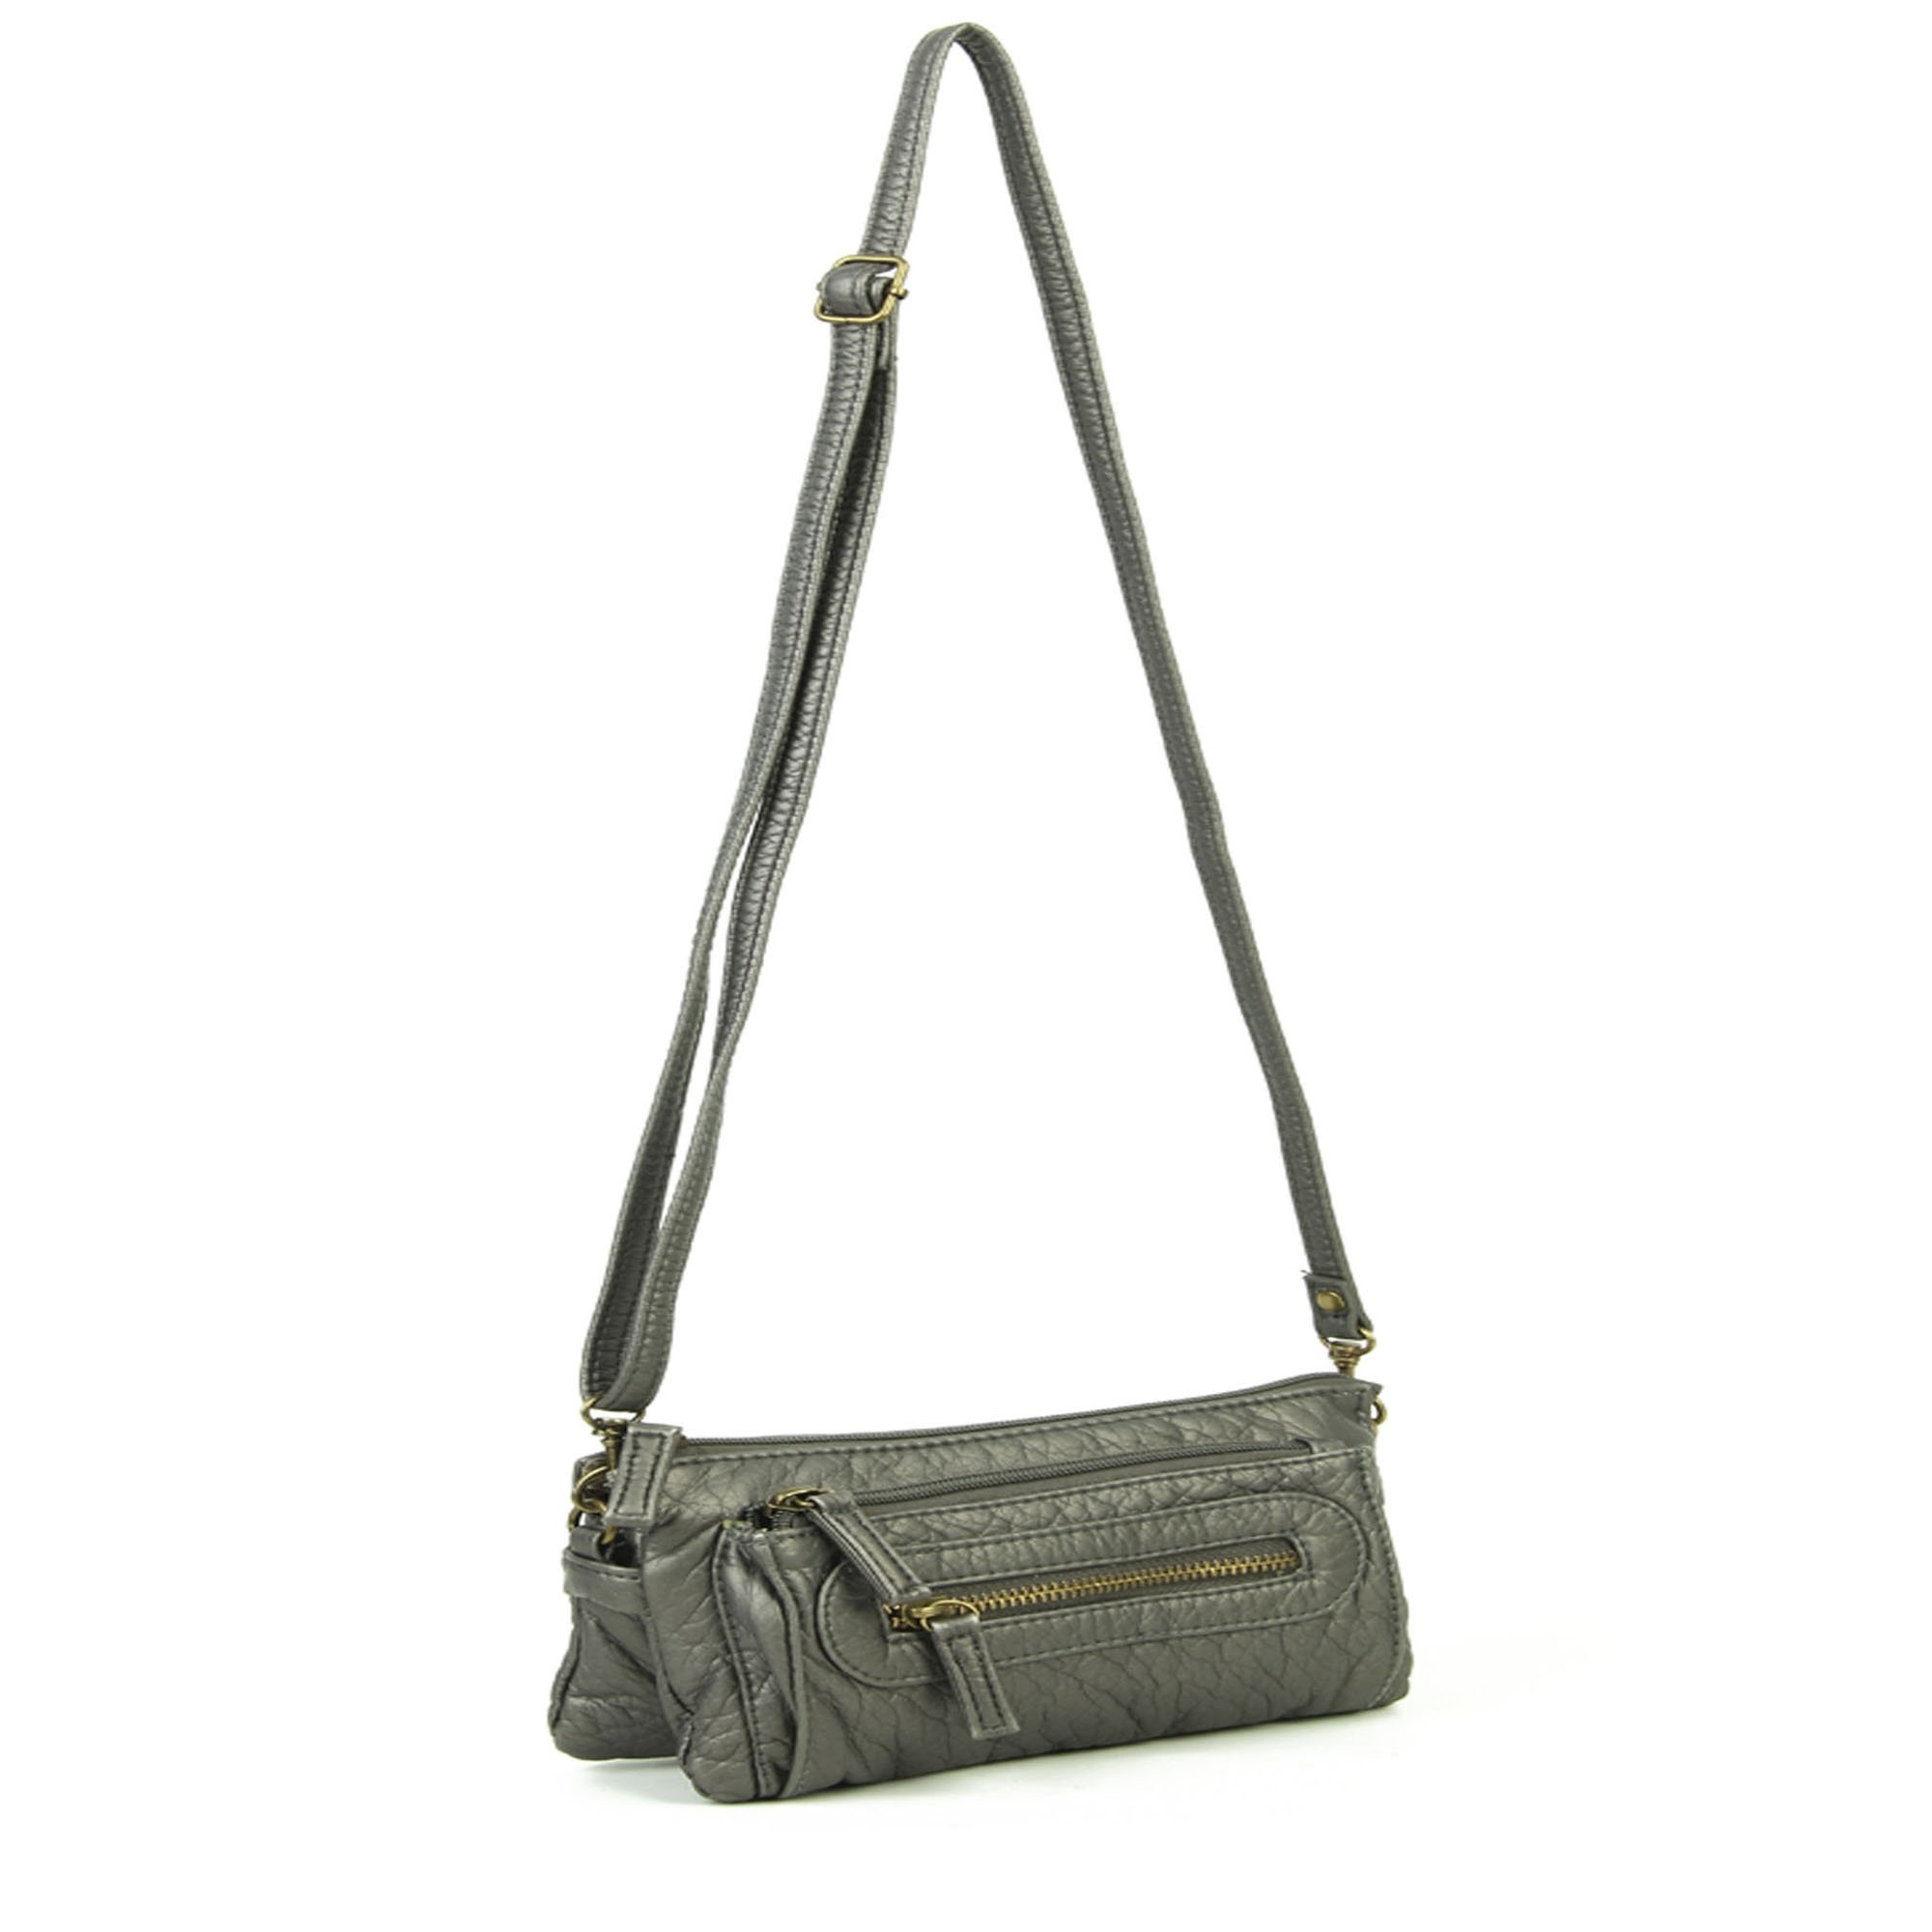 Pasadena Vegan Leather Crossbody Wristlet